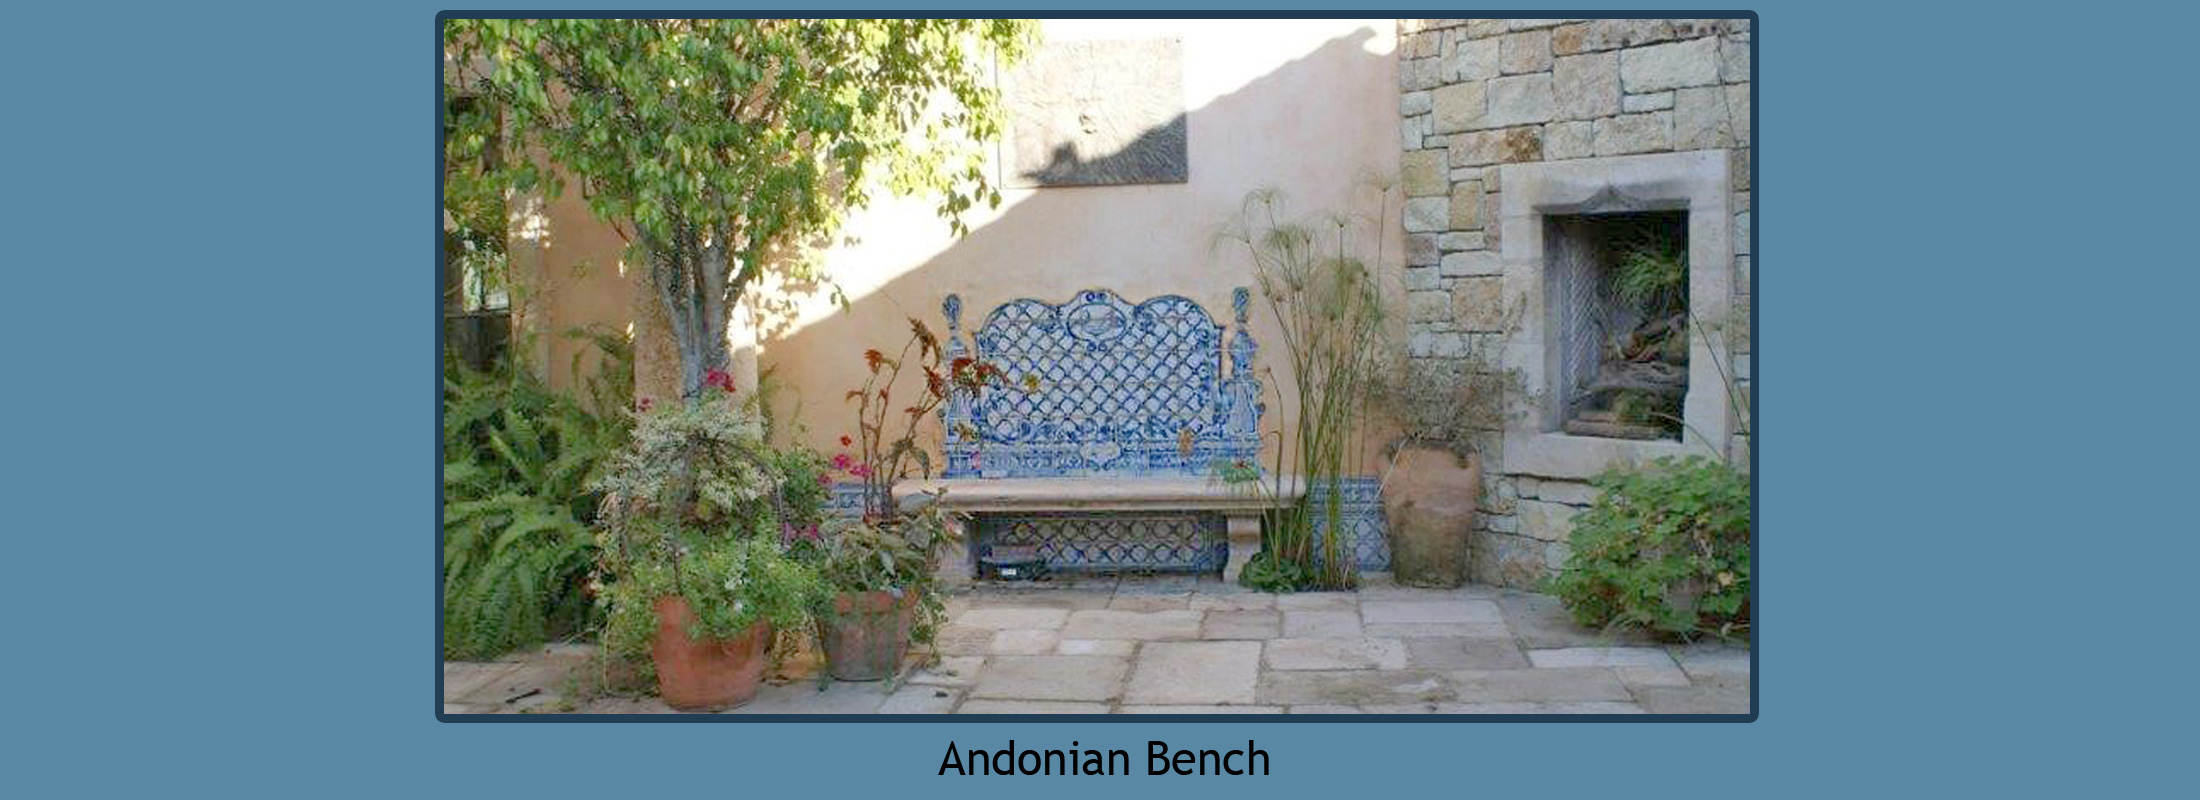 Portuguese Tile Art - Blue and White Azulejos - Tile Mural Bench